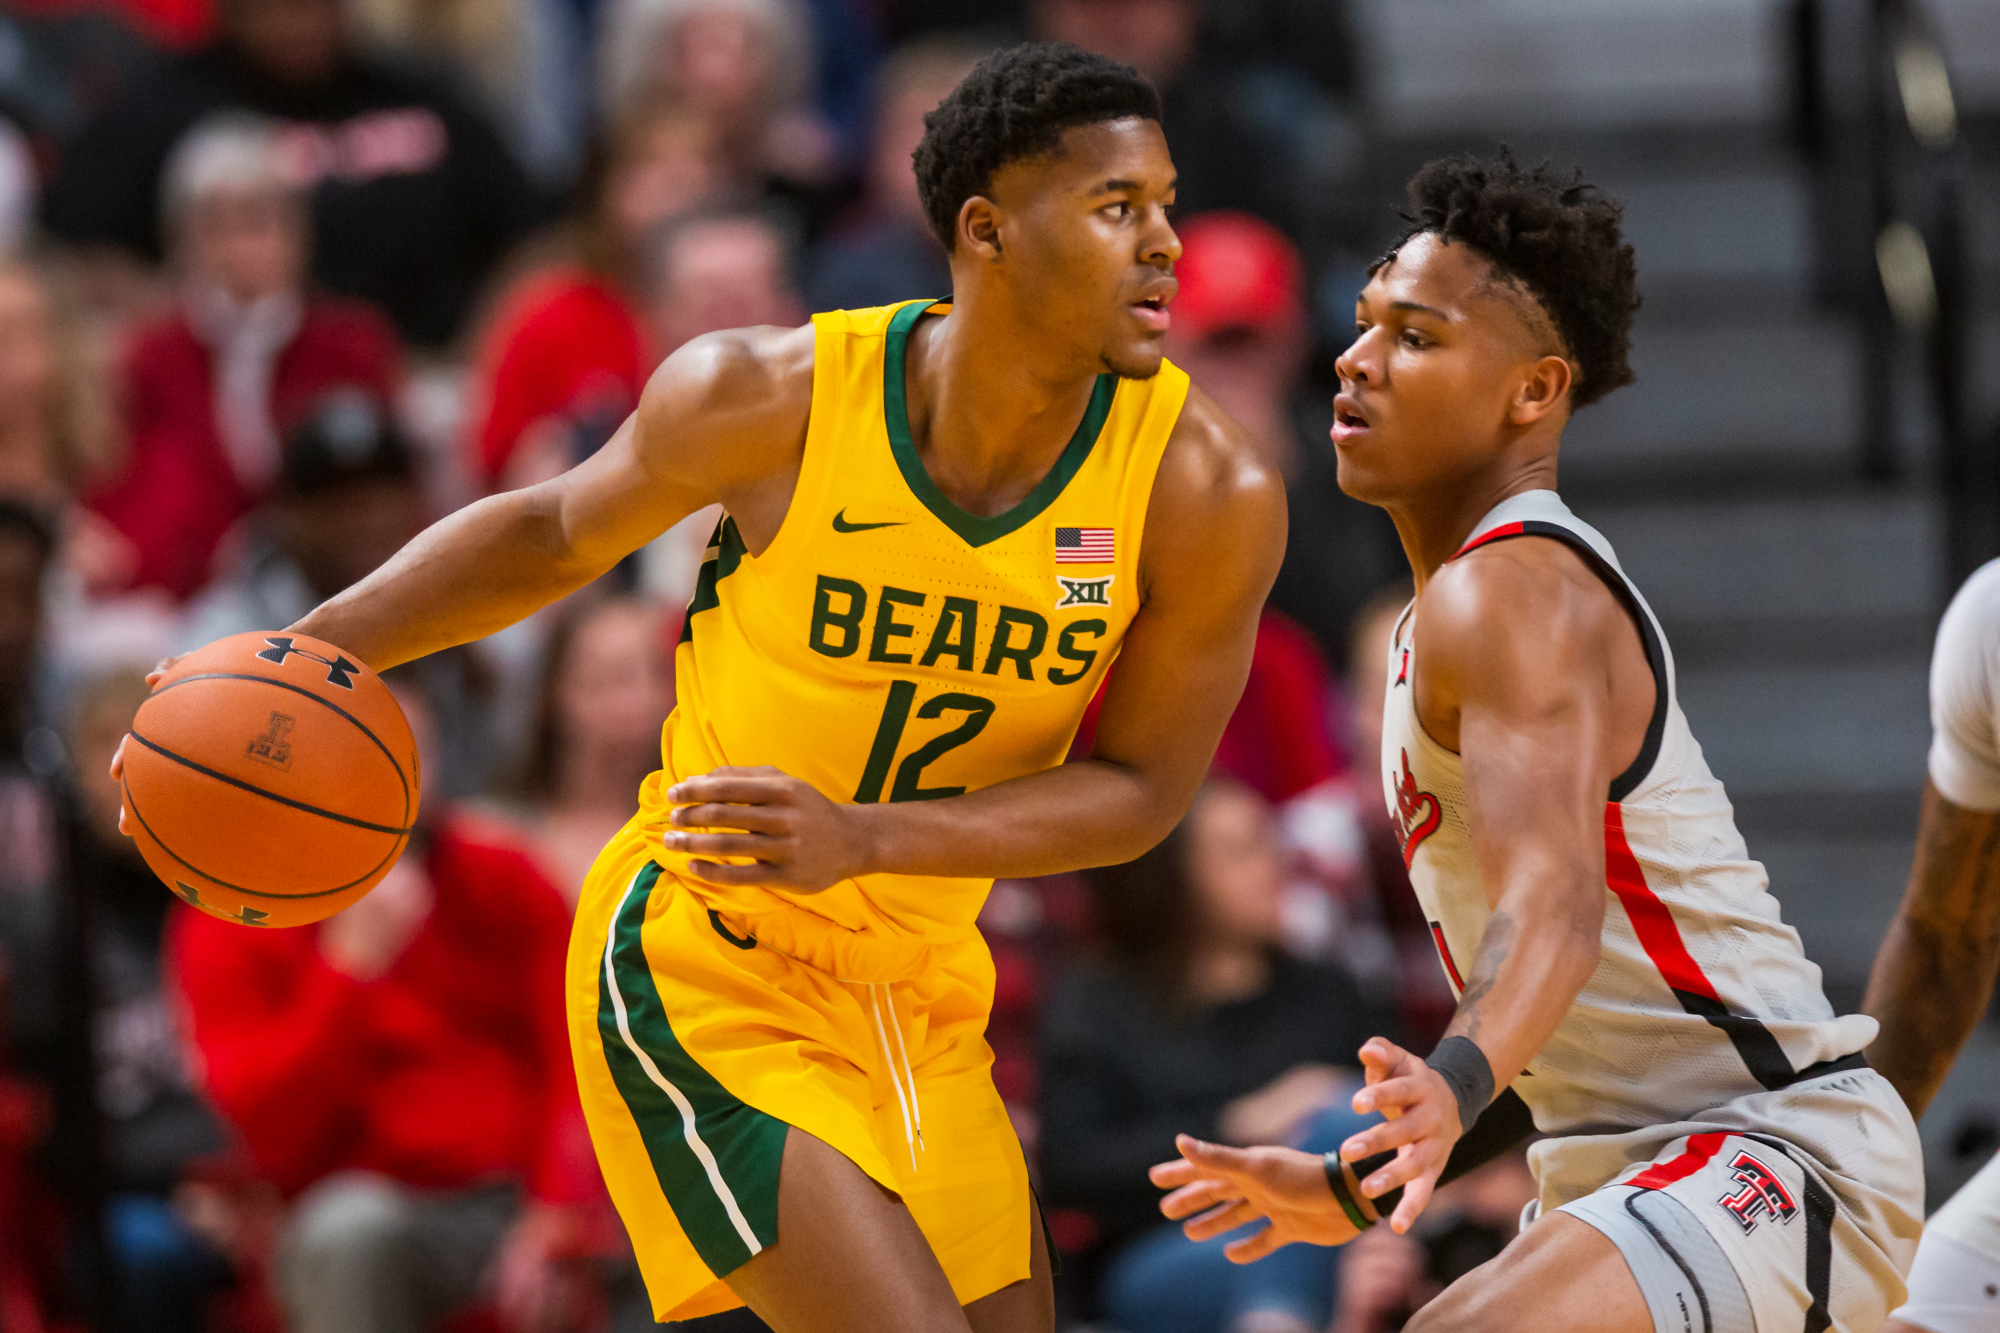 LUBBOCK, TEXAS - JANUARY 07: Guard Jared Butler #12 of the Baylor Bears handles the ball against guard Terrence Shannon #1 of the Texas Tech Red Raiders during the first half of the college basketball game on January 07, 2020 at United Supermarkets Arena in Lubbock, Texas.